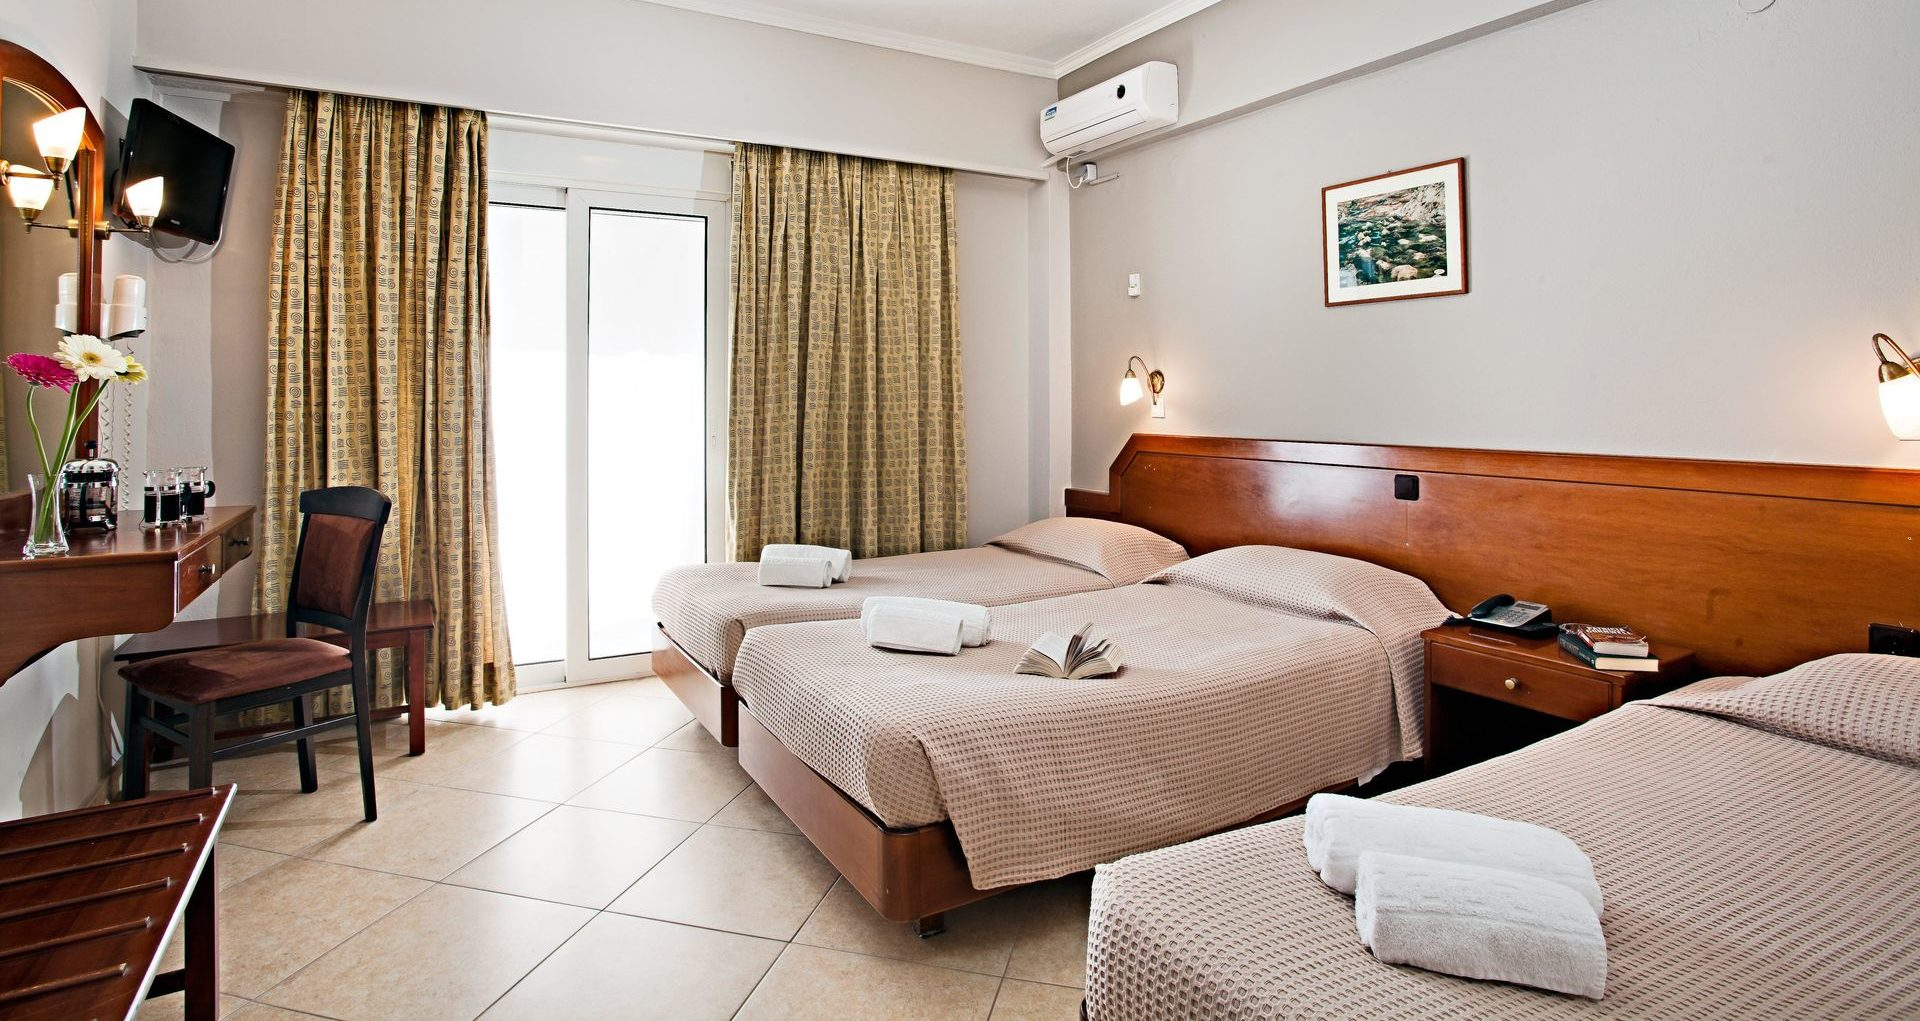 Triple Room Arkadi Hotel Chania city center Crete